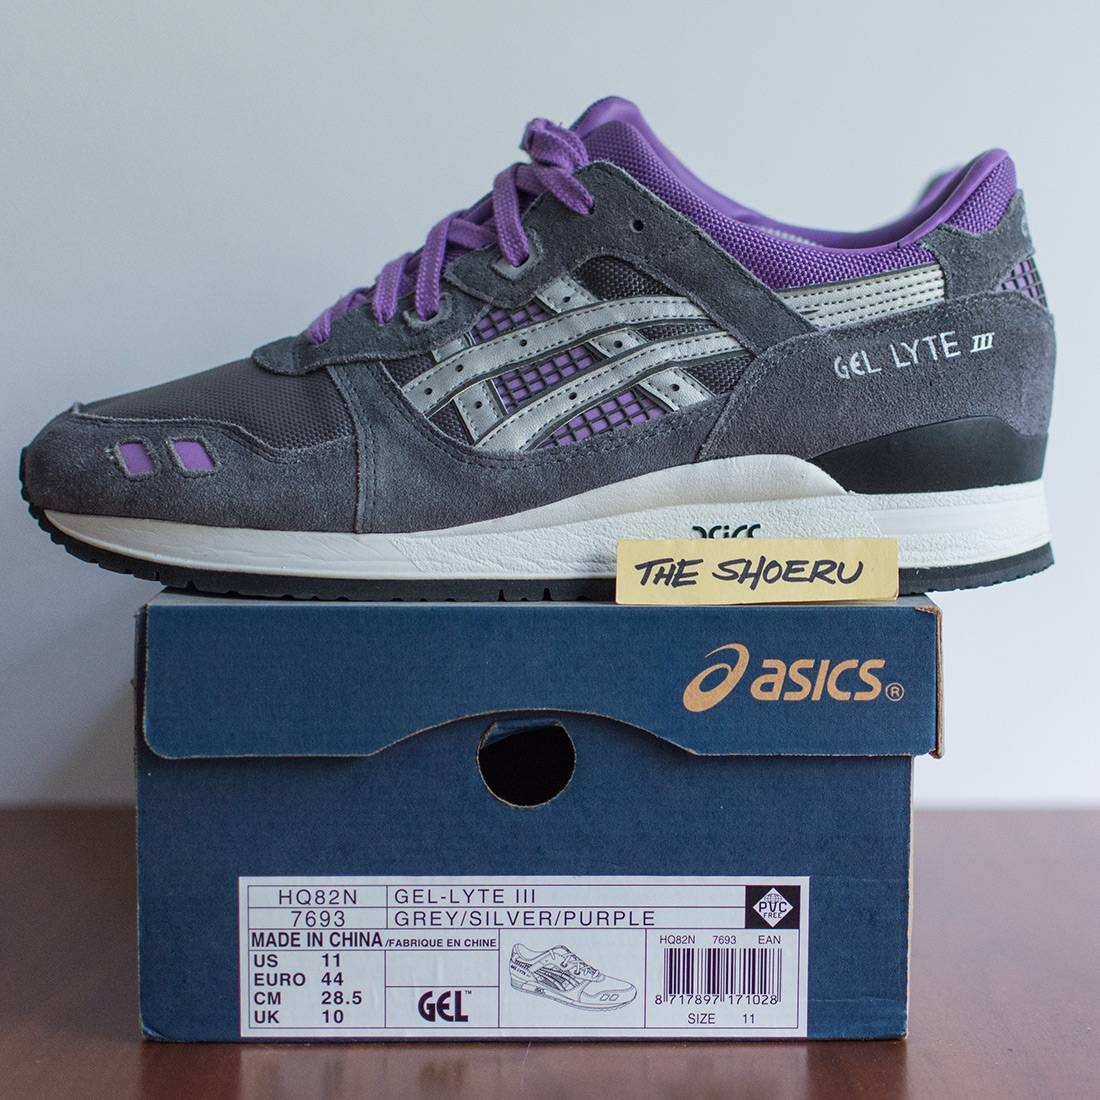 ASICS x solebox Gel Lyte III 'the sun' us11 eu44